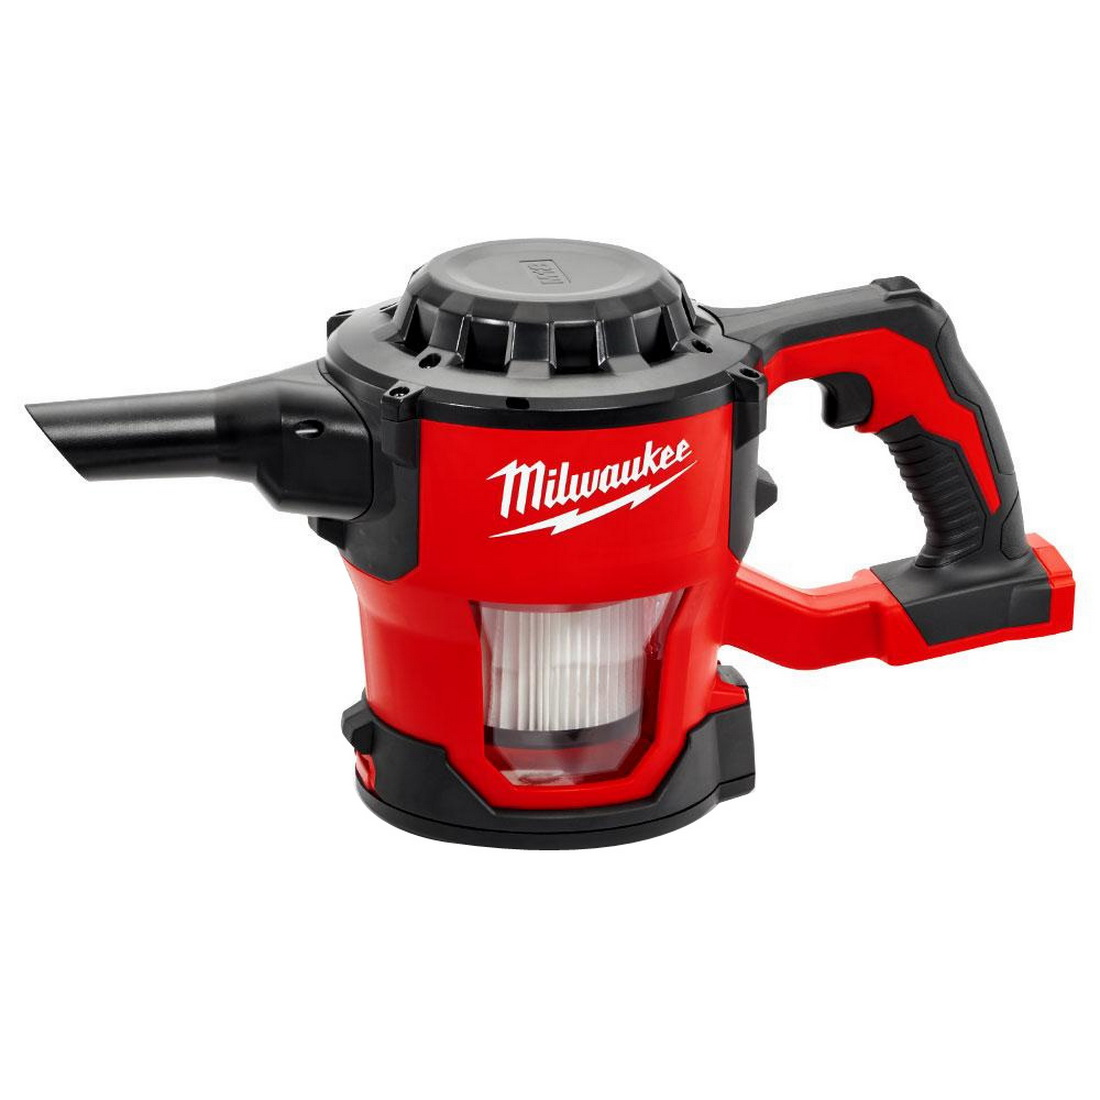 M18 Cordless Compact Vacuum Cleaner (Tool Only)